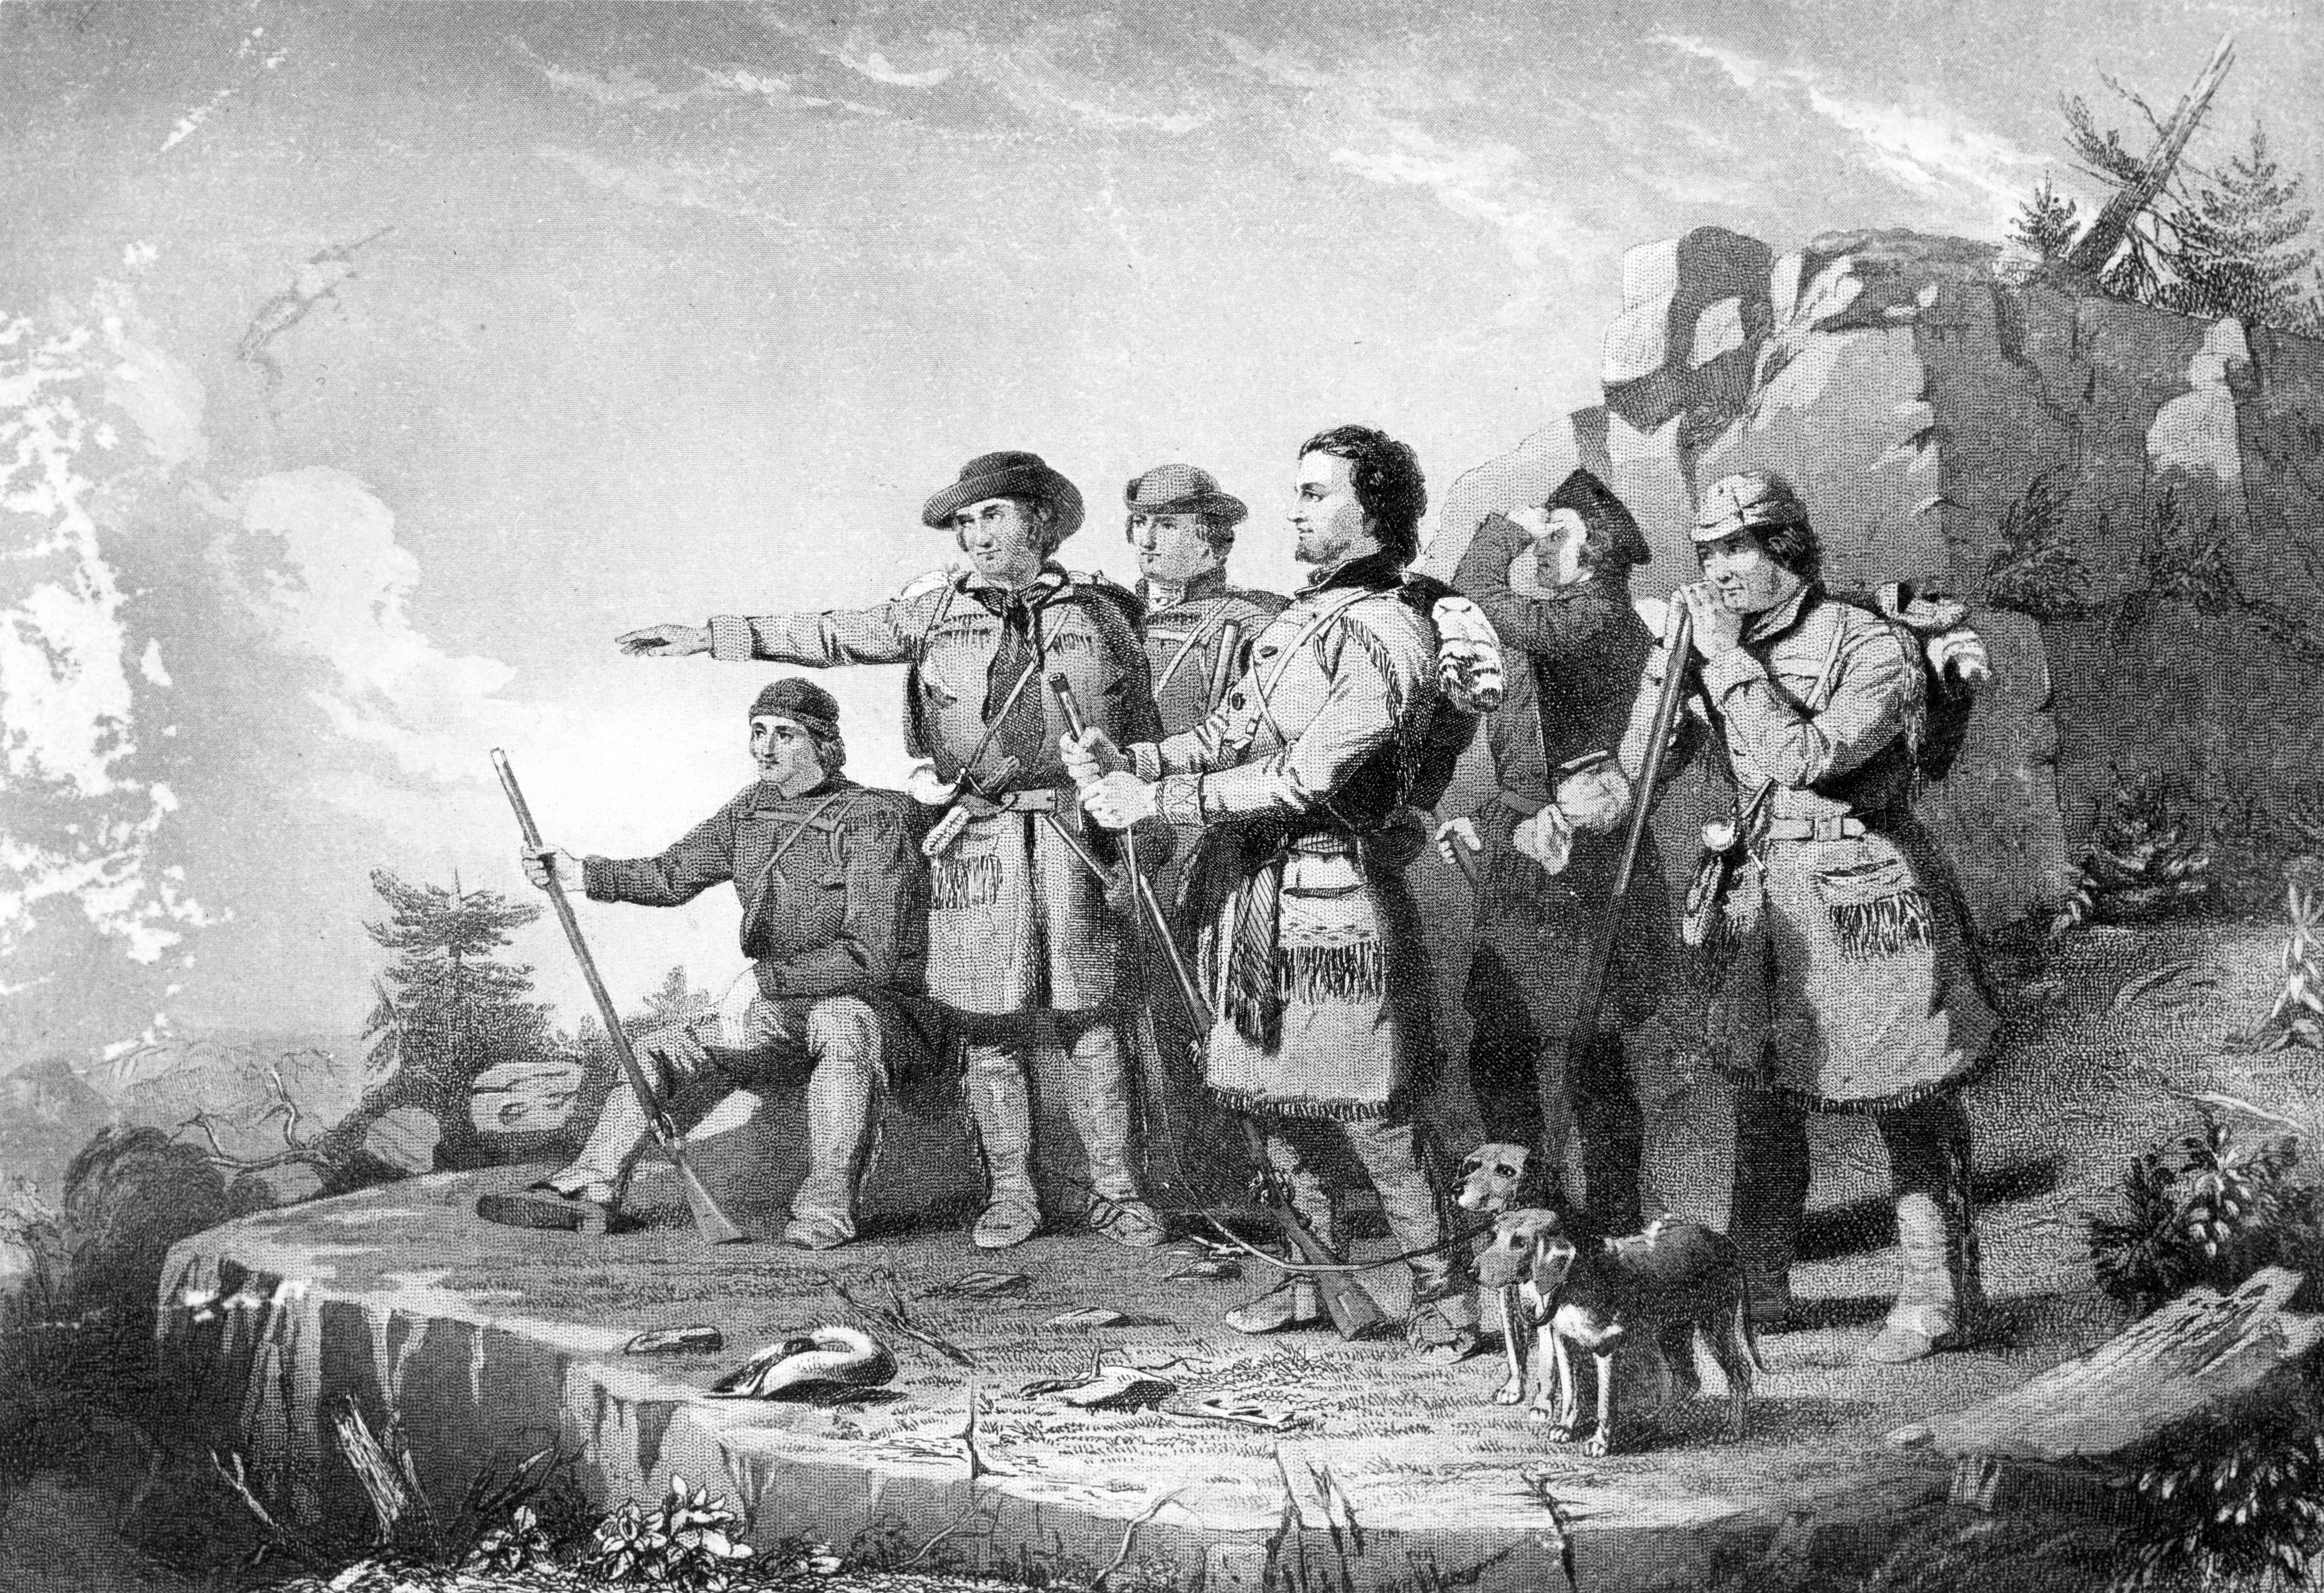 print depicting Daniel Boone seeing Kentucky for the first time